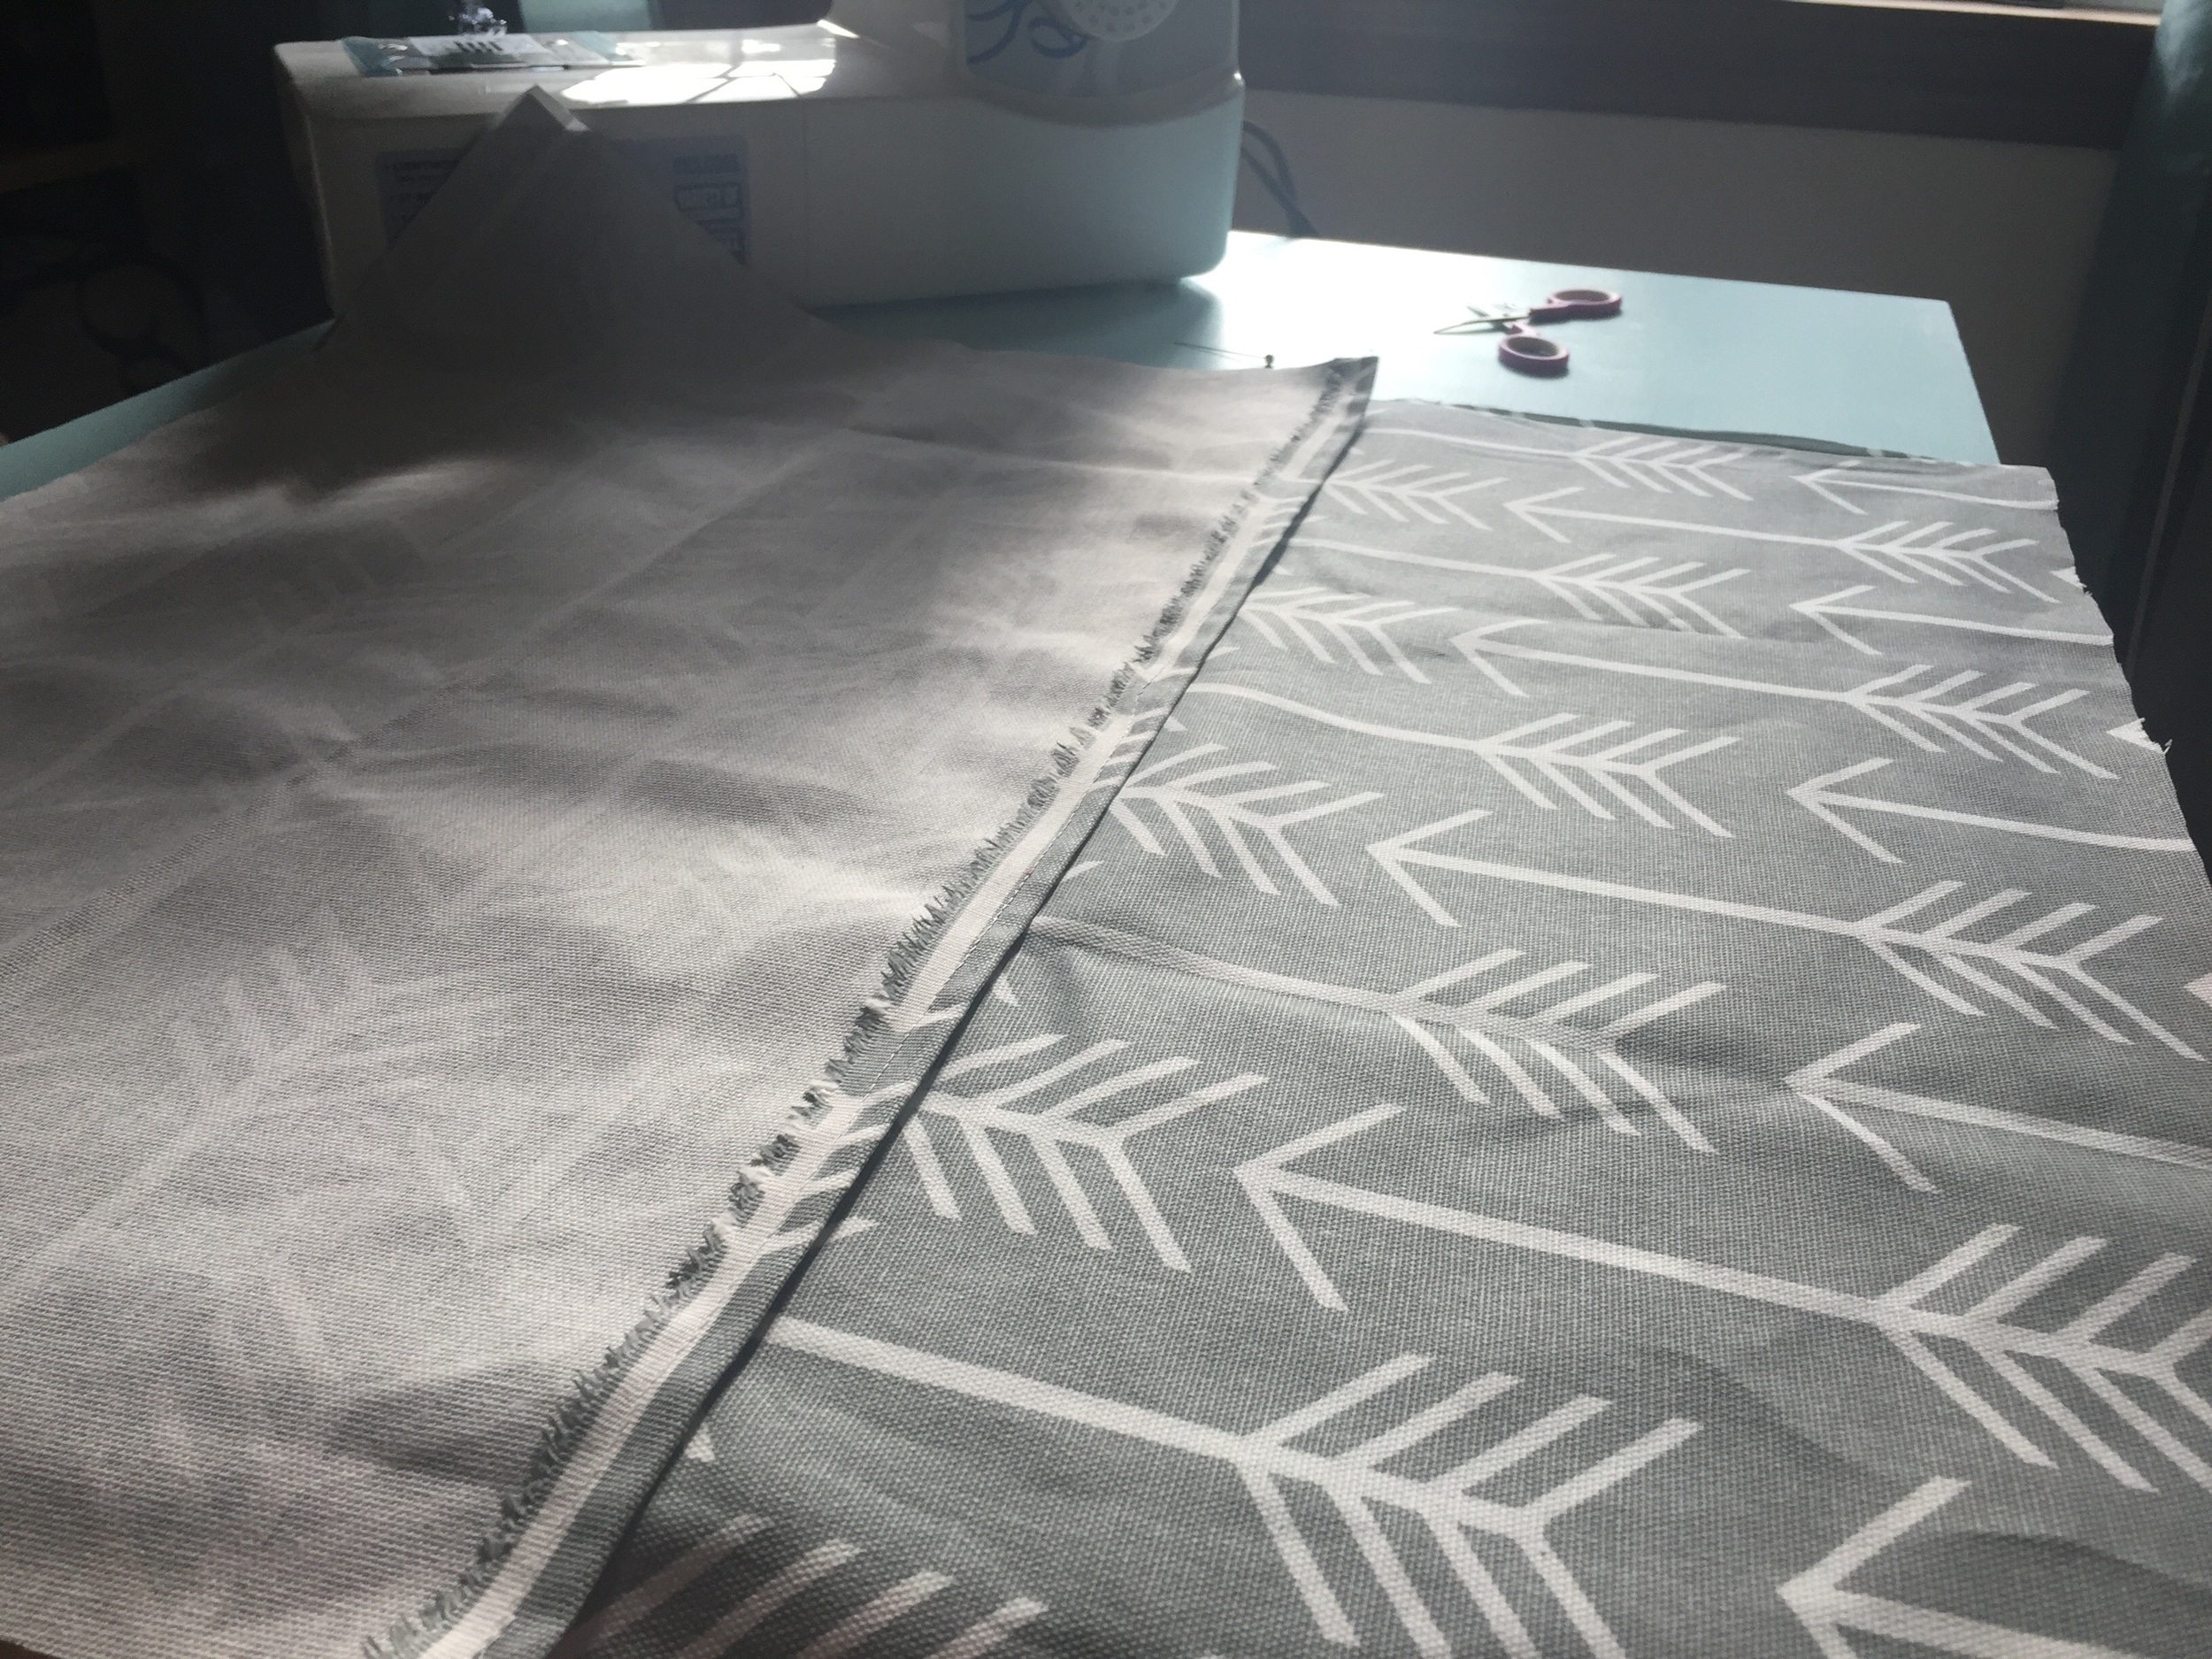 Lay your large piece on table front side up then place your envelope pieces on top of large piece back side up with sewn stitch in middle.